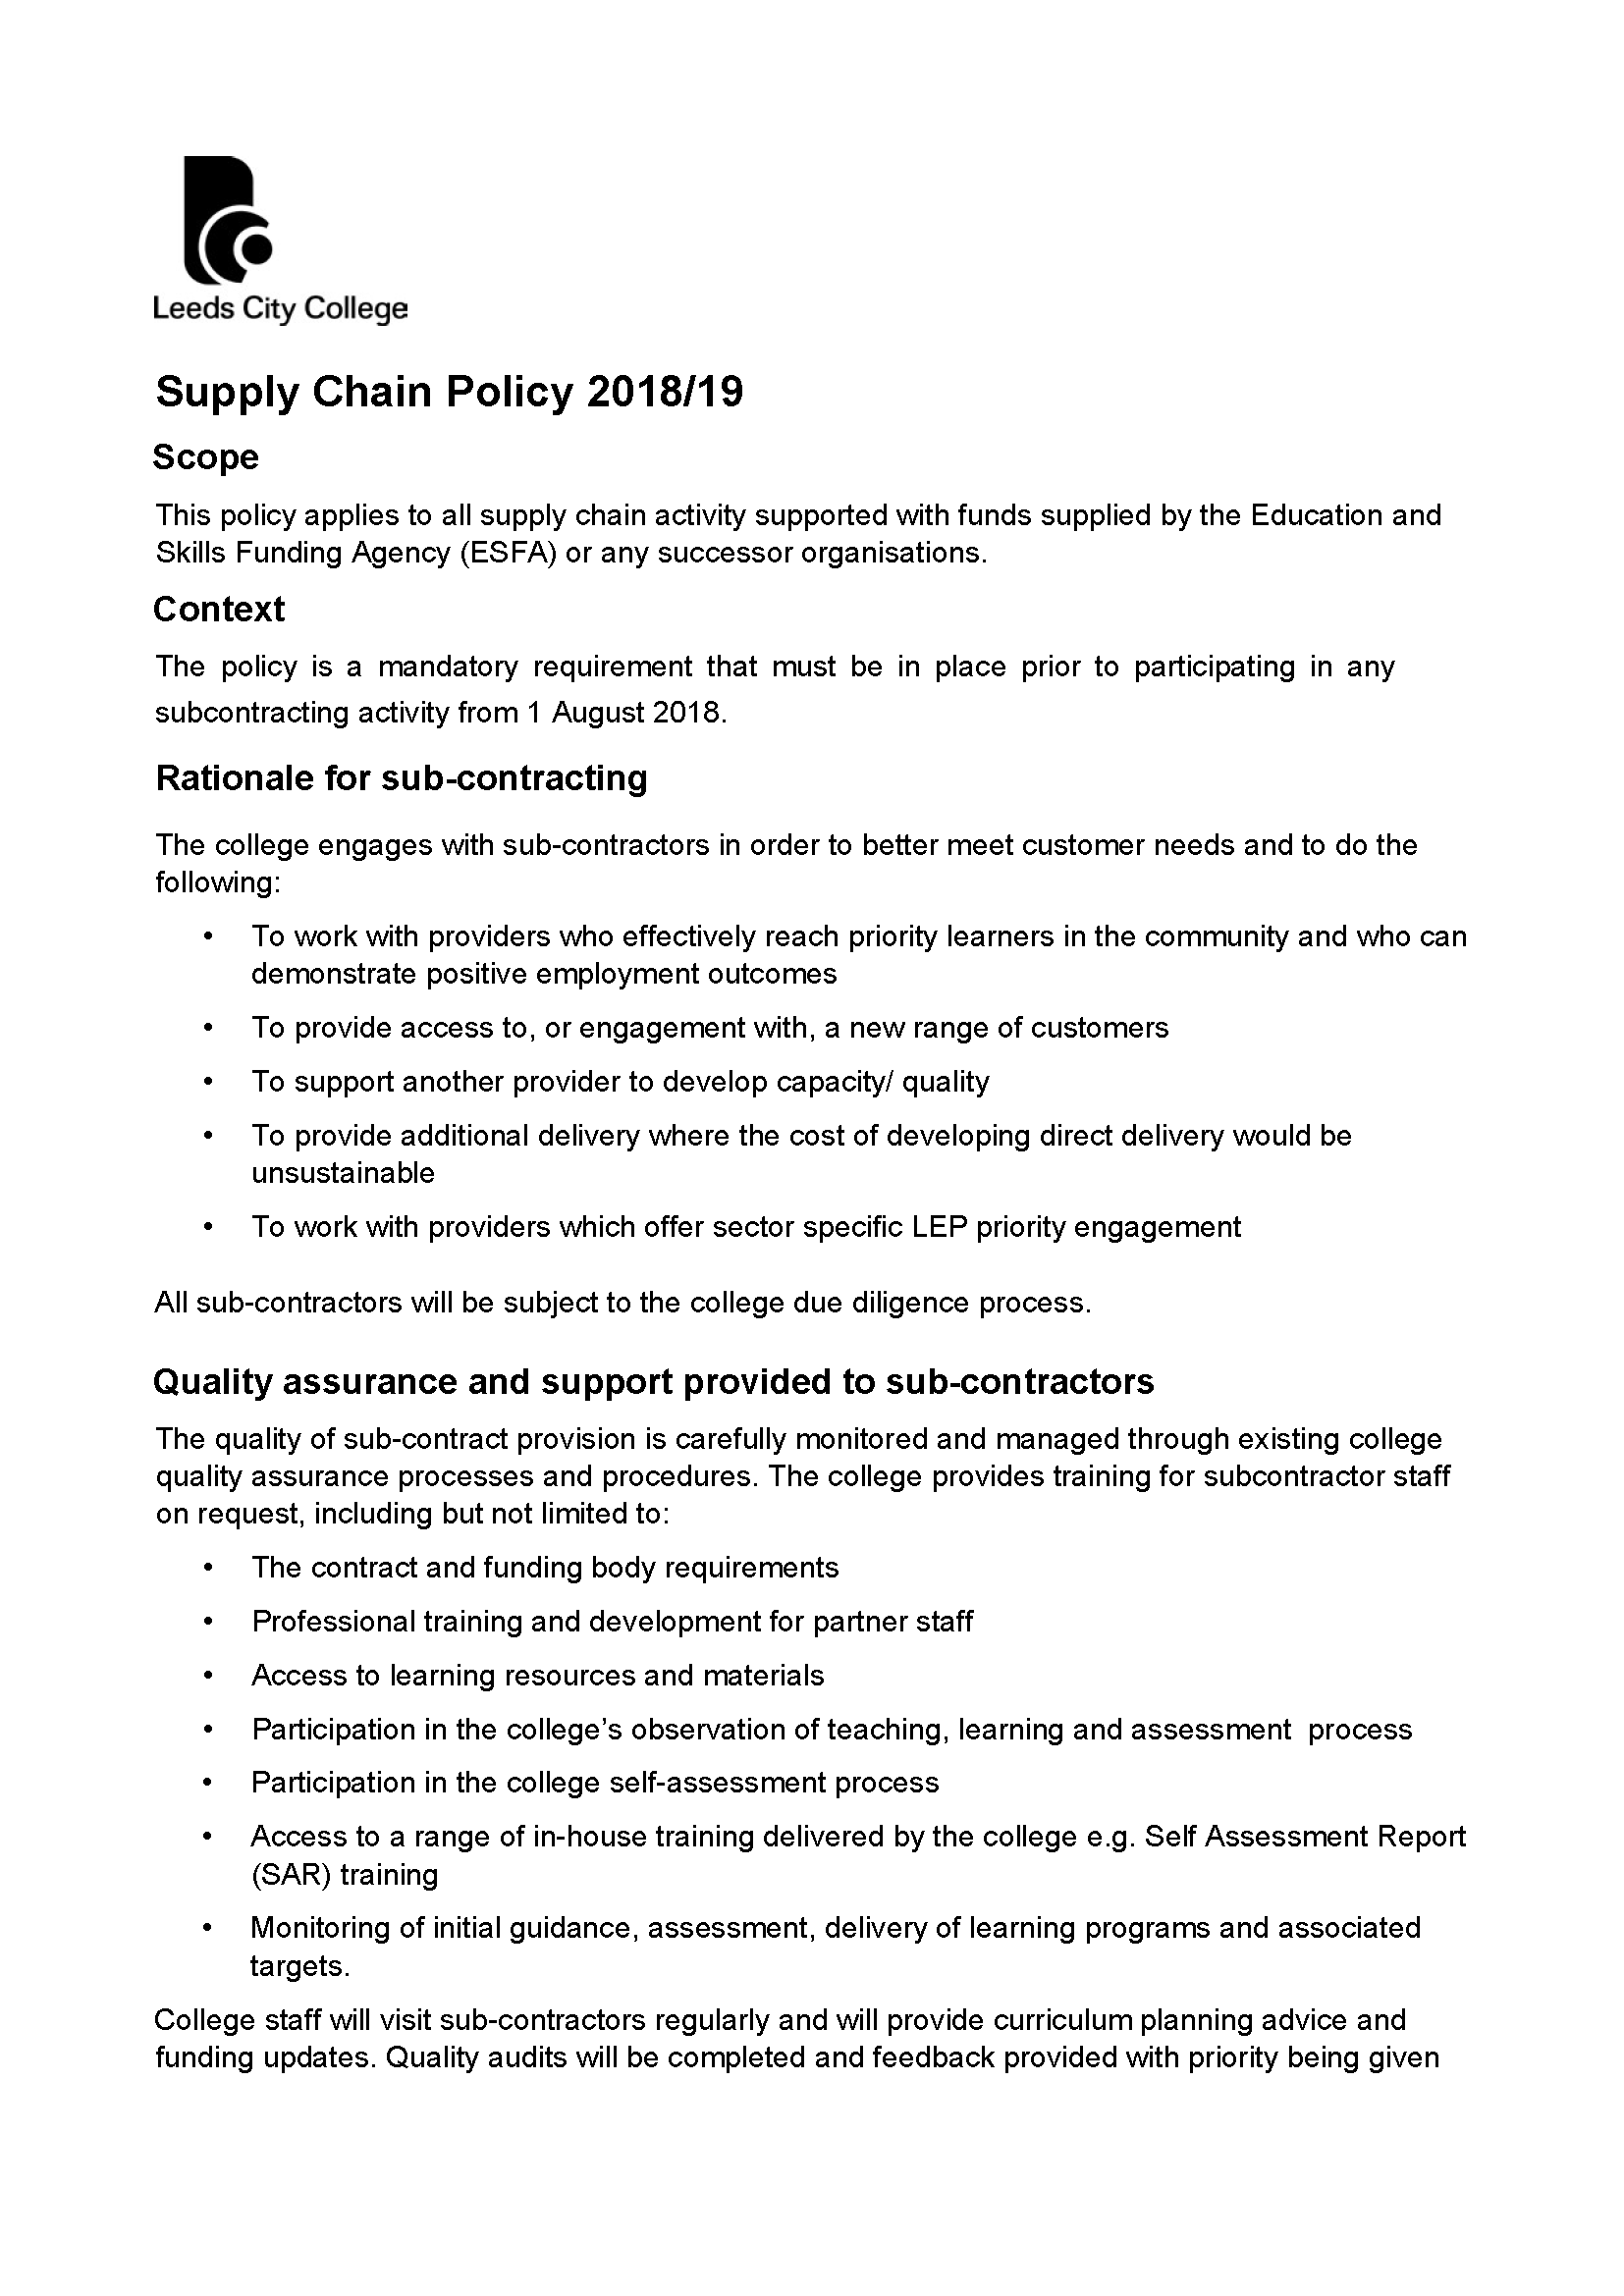 Supply Chain Policy 2018/19 cover